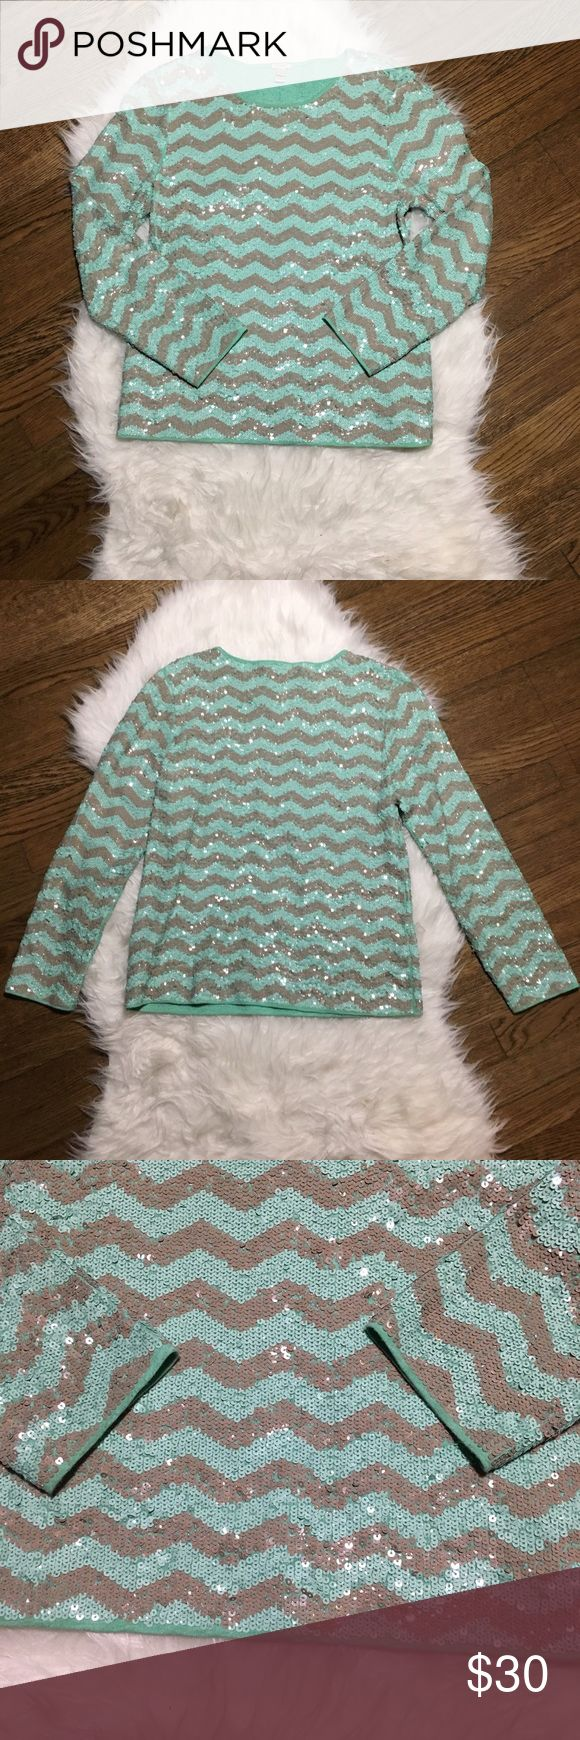 """J. Crew Chevron zigzag Sequin Mint Shirt M Gently used. Please see pictures for slight make up staining on collar and signs of wear from where arms rubbed up against sequins on side. Armpit to armpit is 18.5"""". Length is 22.5"""". J. Crew Tops Tees - Long Sleeve"""